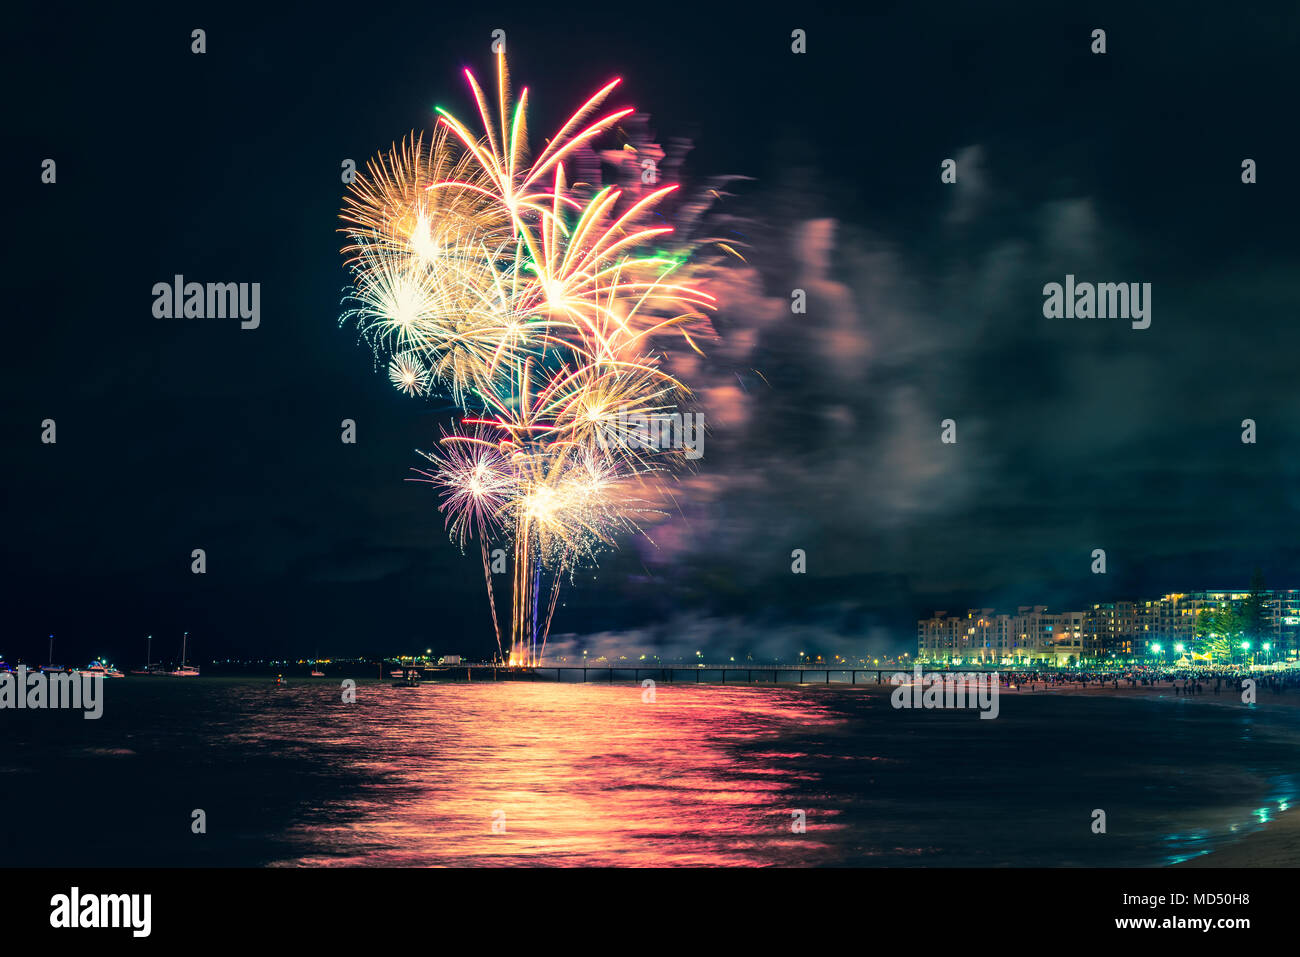 Fireworks display on New Year eve at Glenelg beach from jetty, South Australia - Stock Image